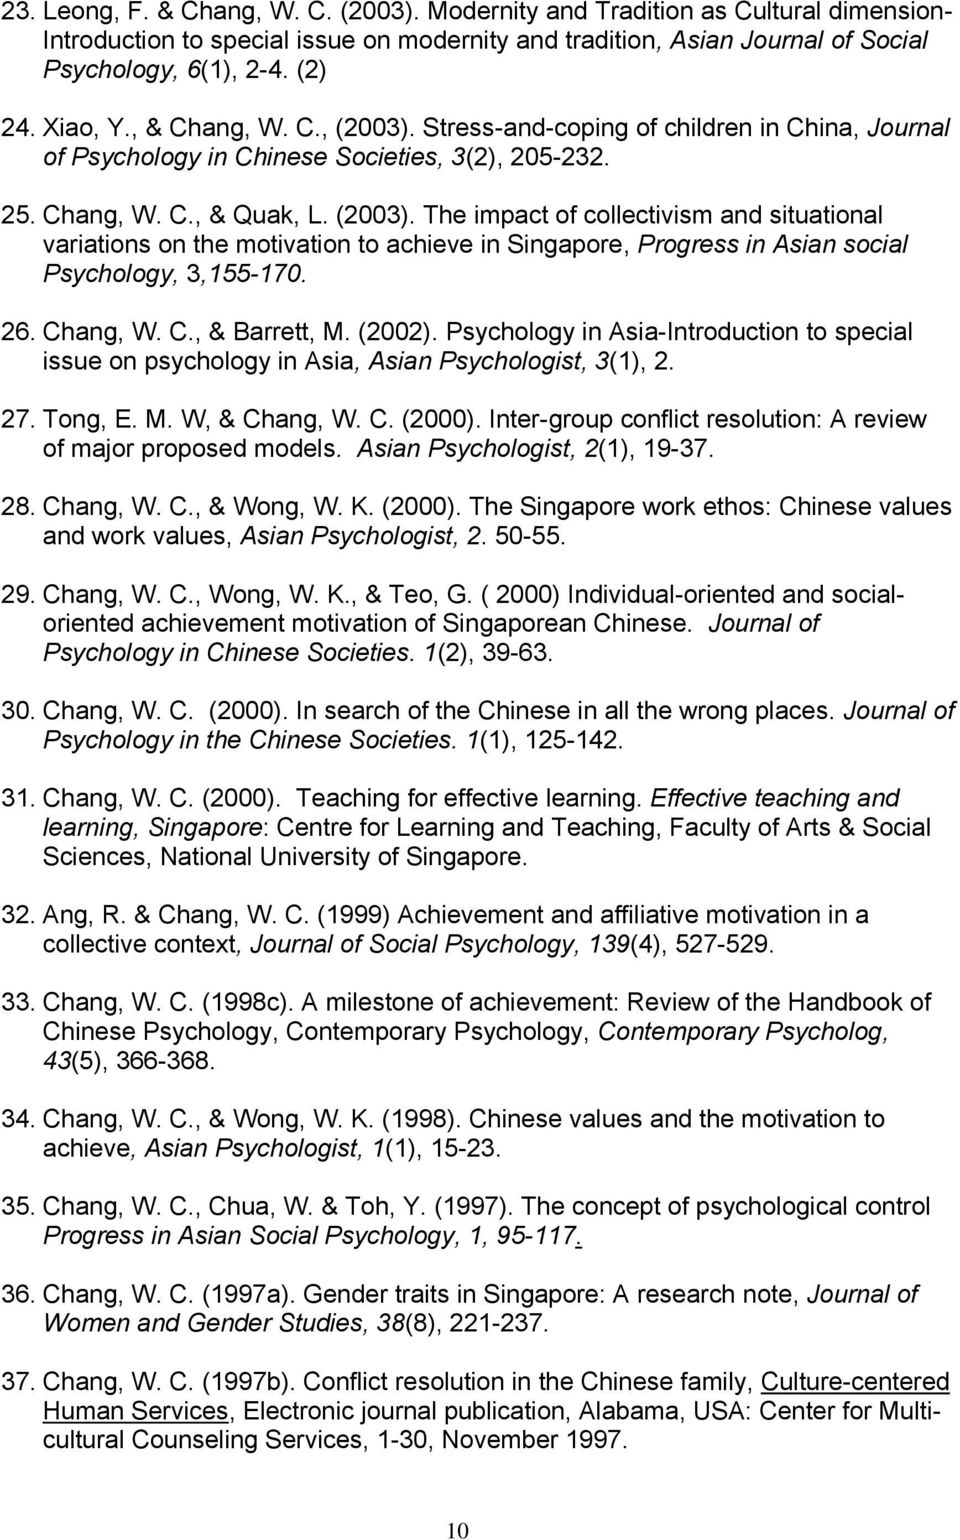 26. Chang, W. C., & Barrett, M. (2002). Psychology in Asia-Introduction to special issue on psychology in Asia, Asian Psychologist, 3(1), 2. 27. Tong, E. M. W, & Chang, W. C. (2000).